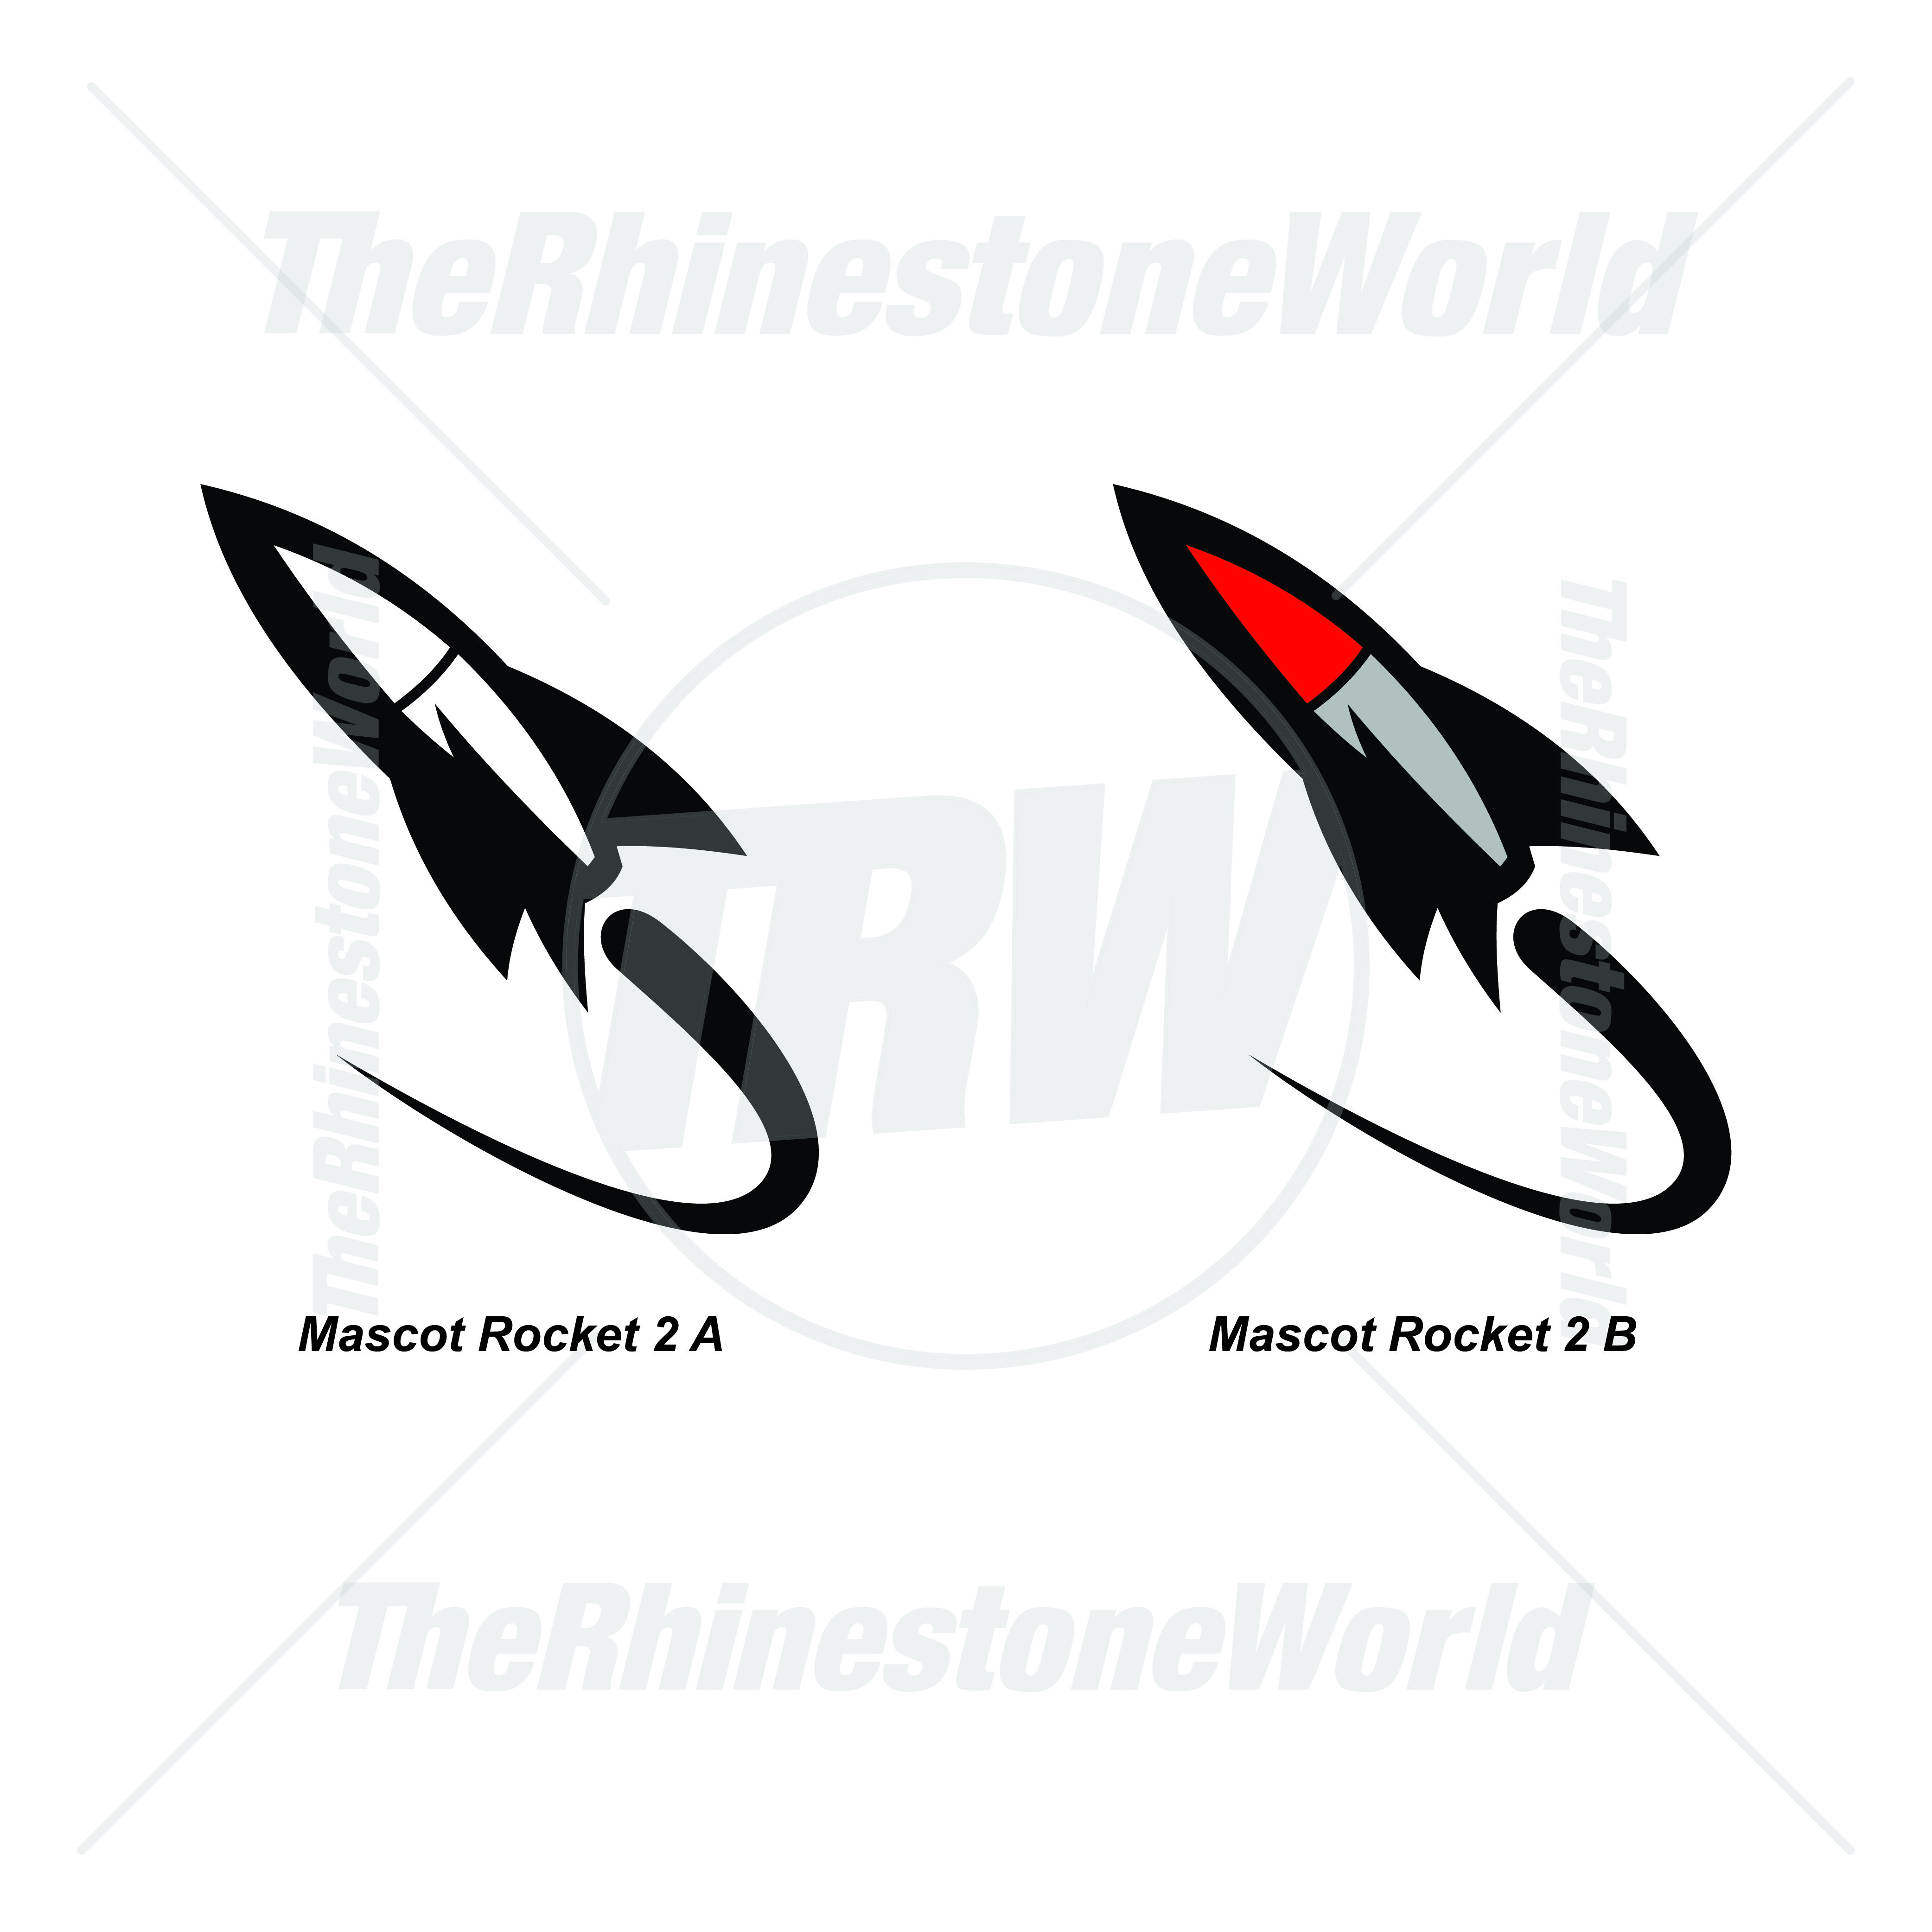 TRW MC Mascot Rockets 2 - Download